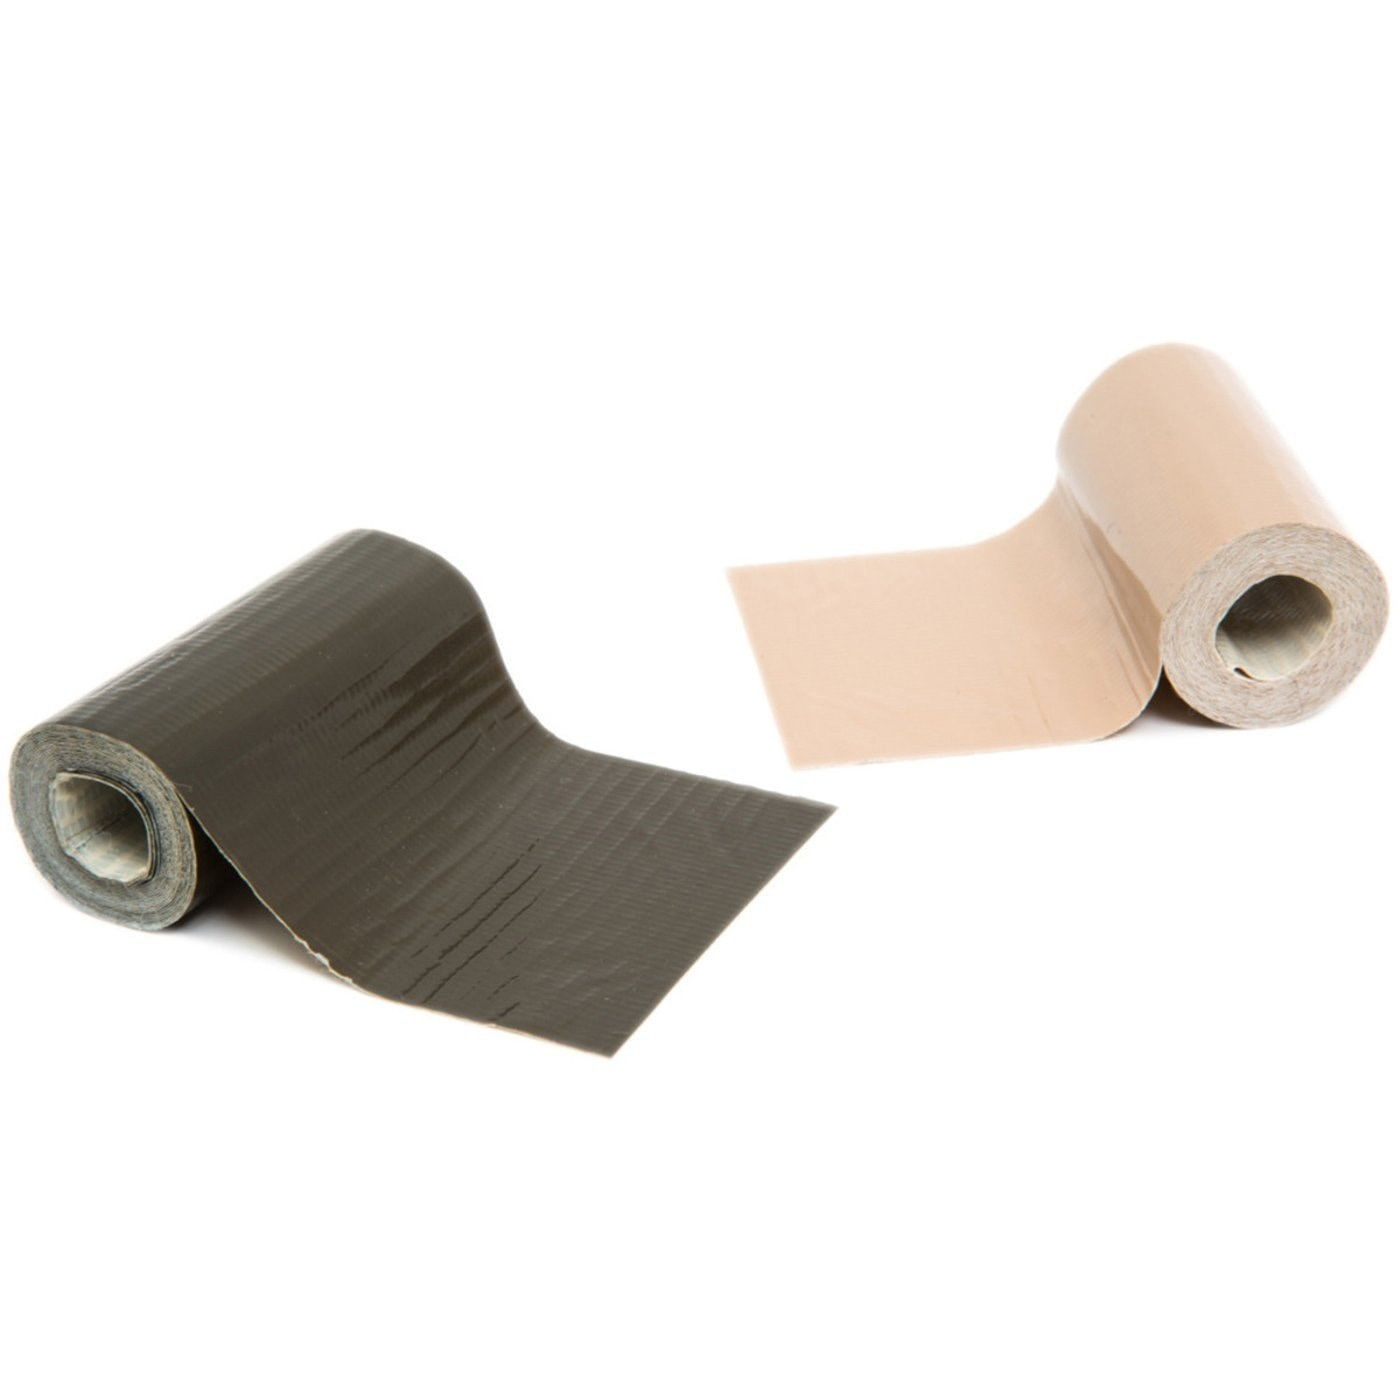 Duct Tape Field Kit - Od & Tan/sand - Outdoor Equipment - Mcnett Tactical - Colonel Mustard